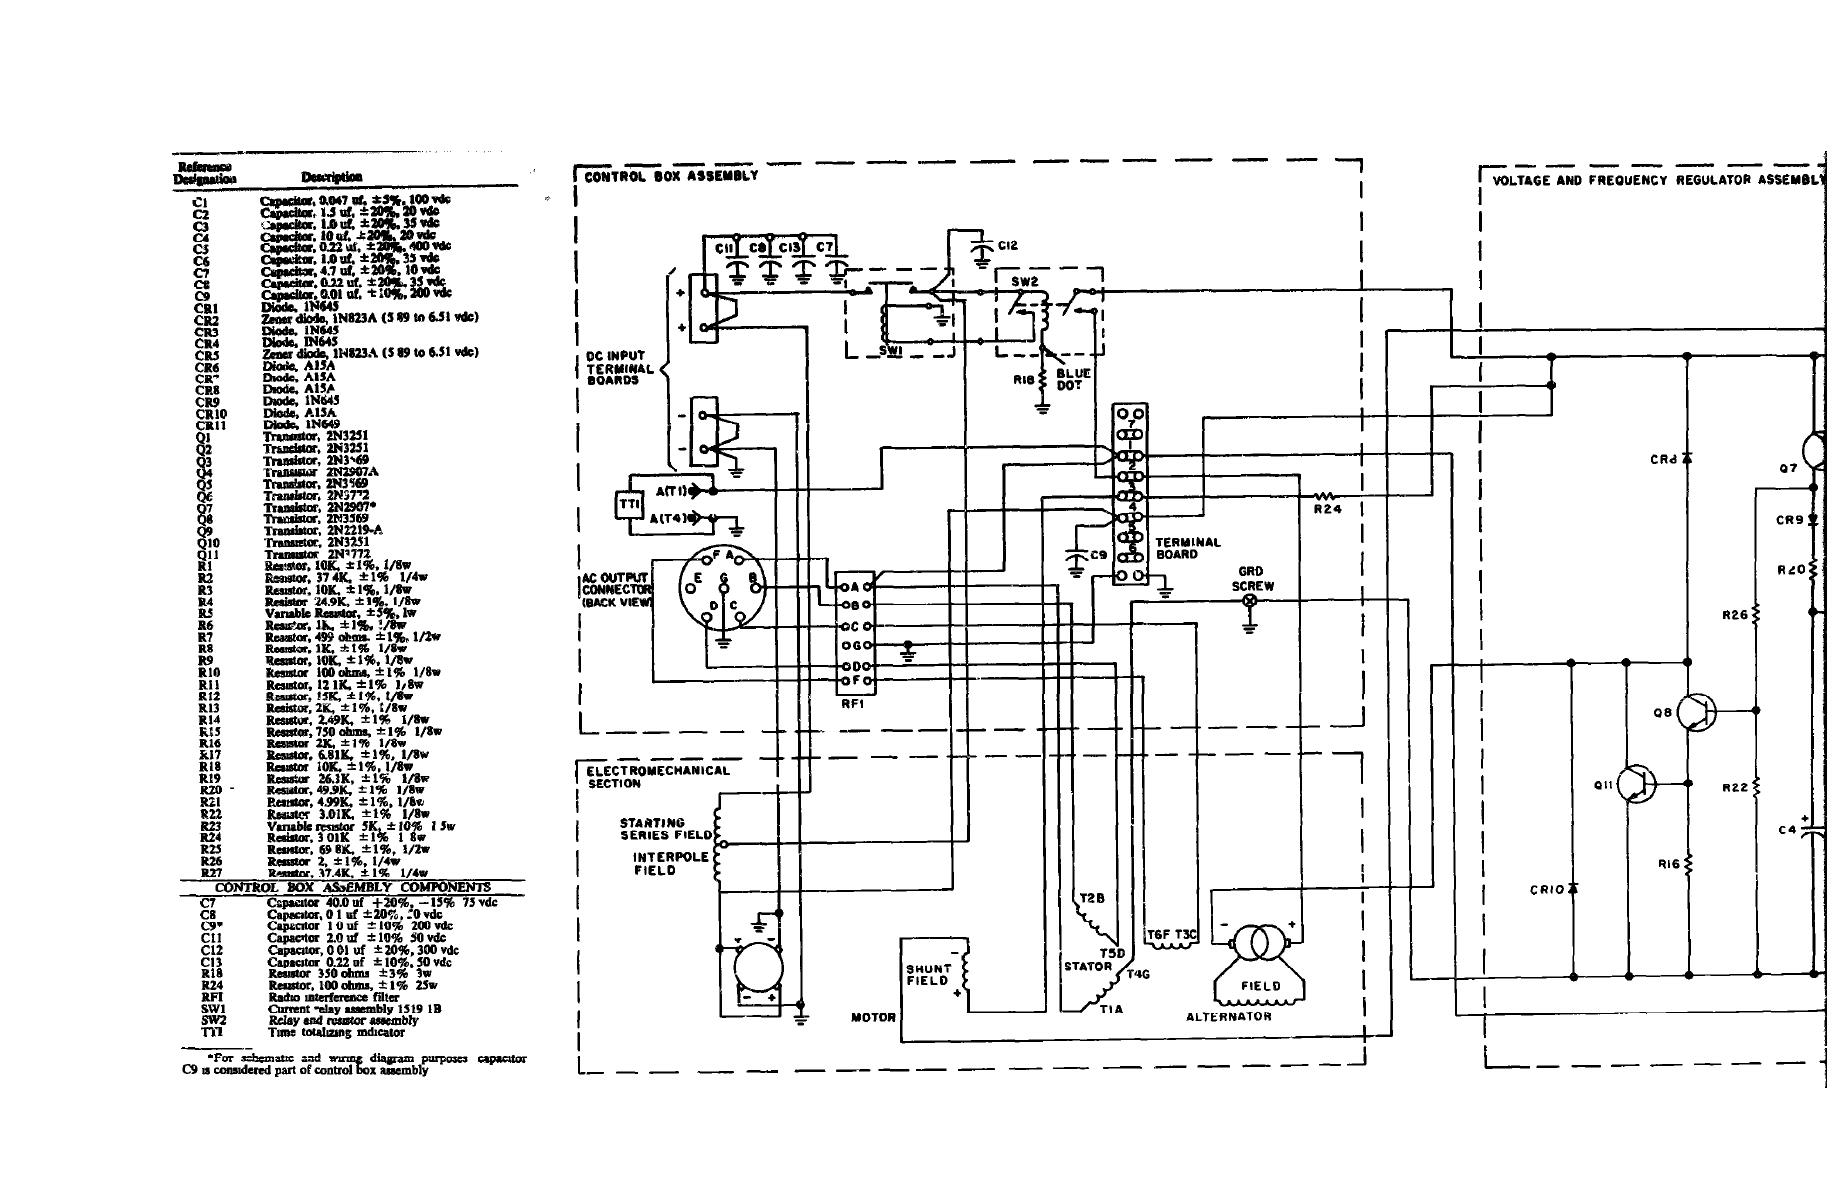 figure fo 2 1 schematic diagram for motor generator pu 750a a tm rh generators tpub com electric generator schematic diagram electric generator schematic diagram